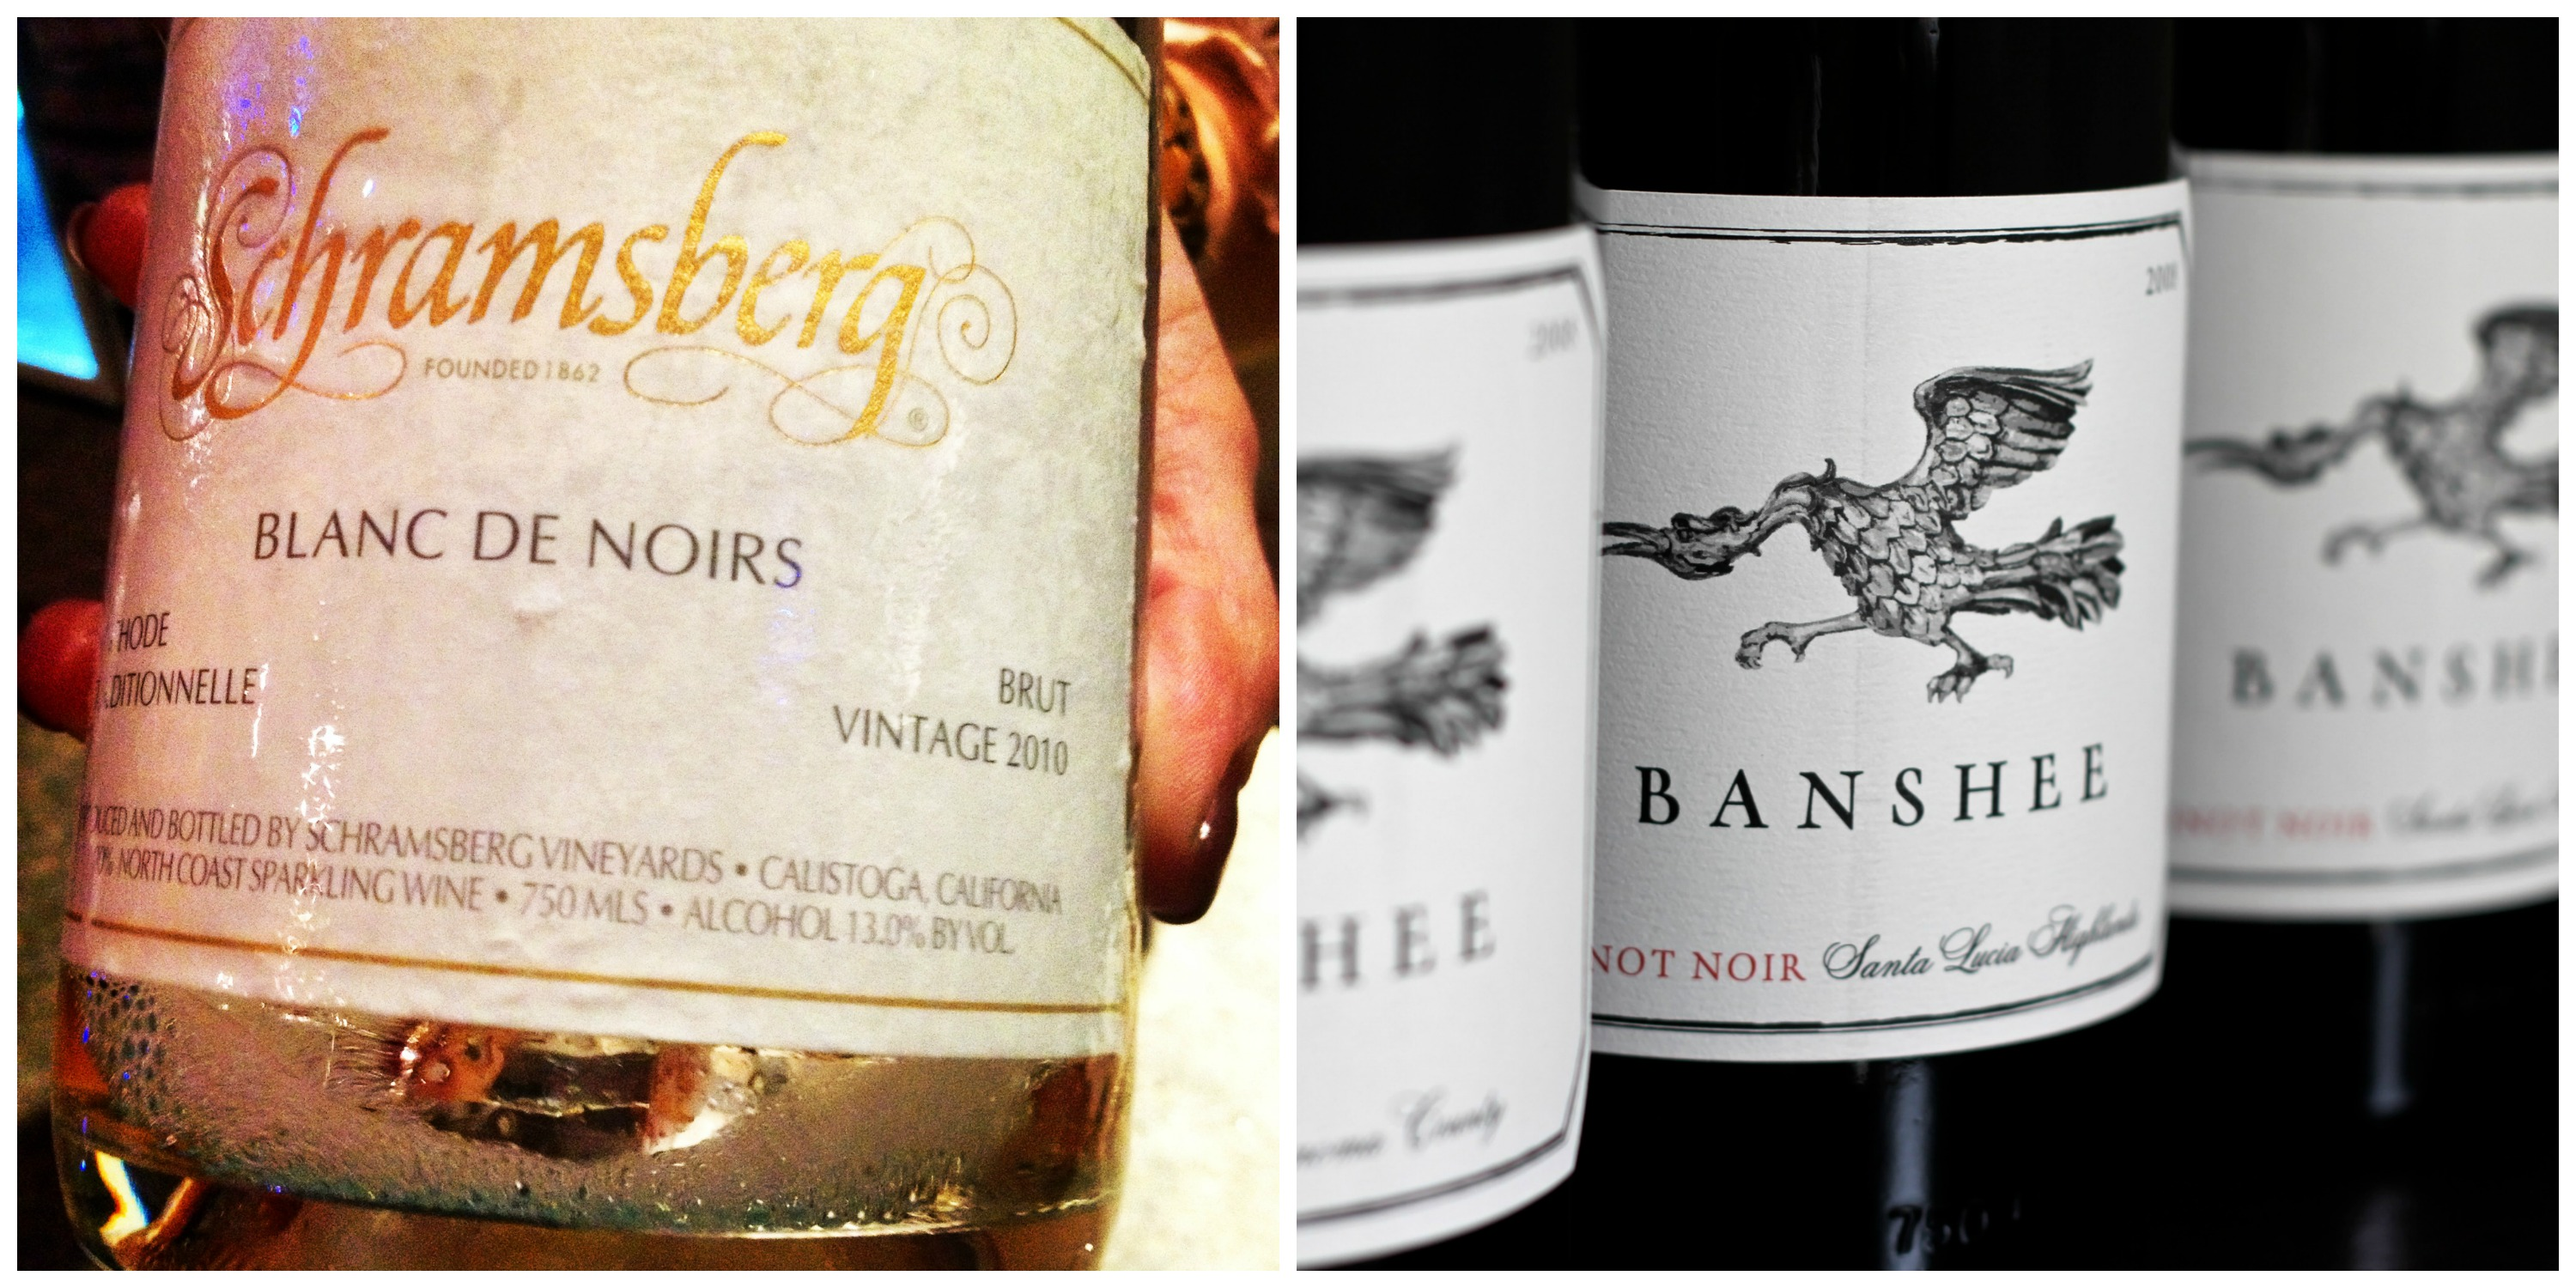 One of my fave bubblies made with 100% Pinot Noir grapes. Banshee Pinot Noir is perfect sip after battling with devious Elizabeth North. (left image © TheBubbleista; right image courtesy of Teplin + Nuss Public Relations)